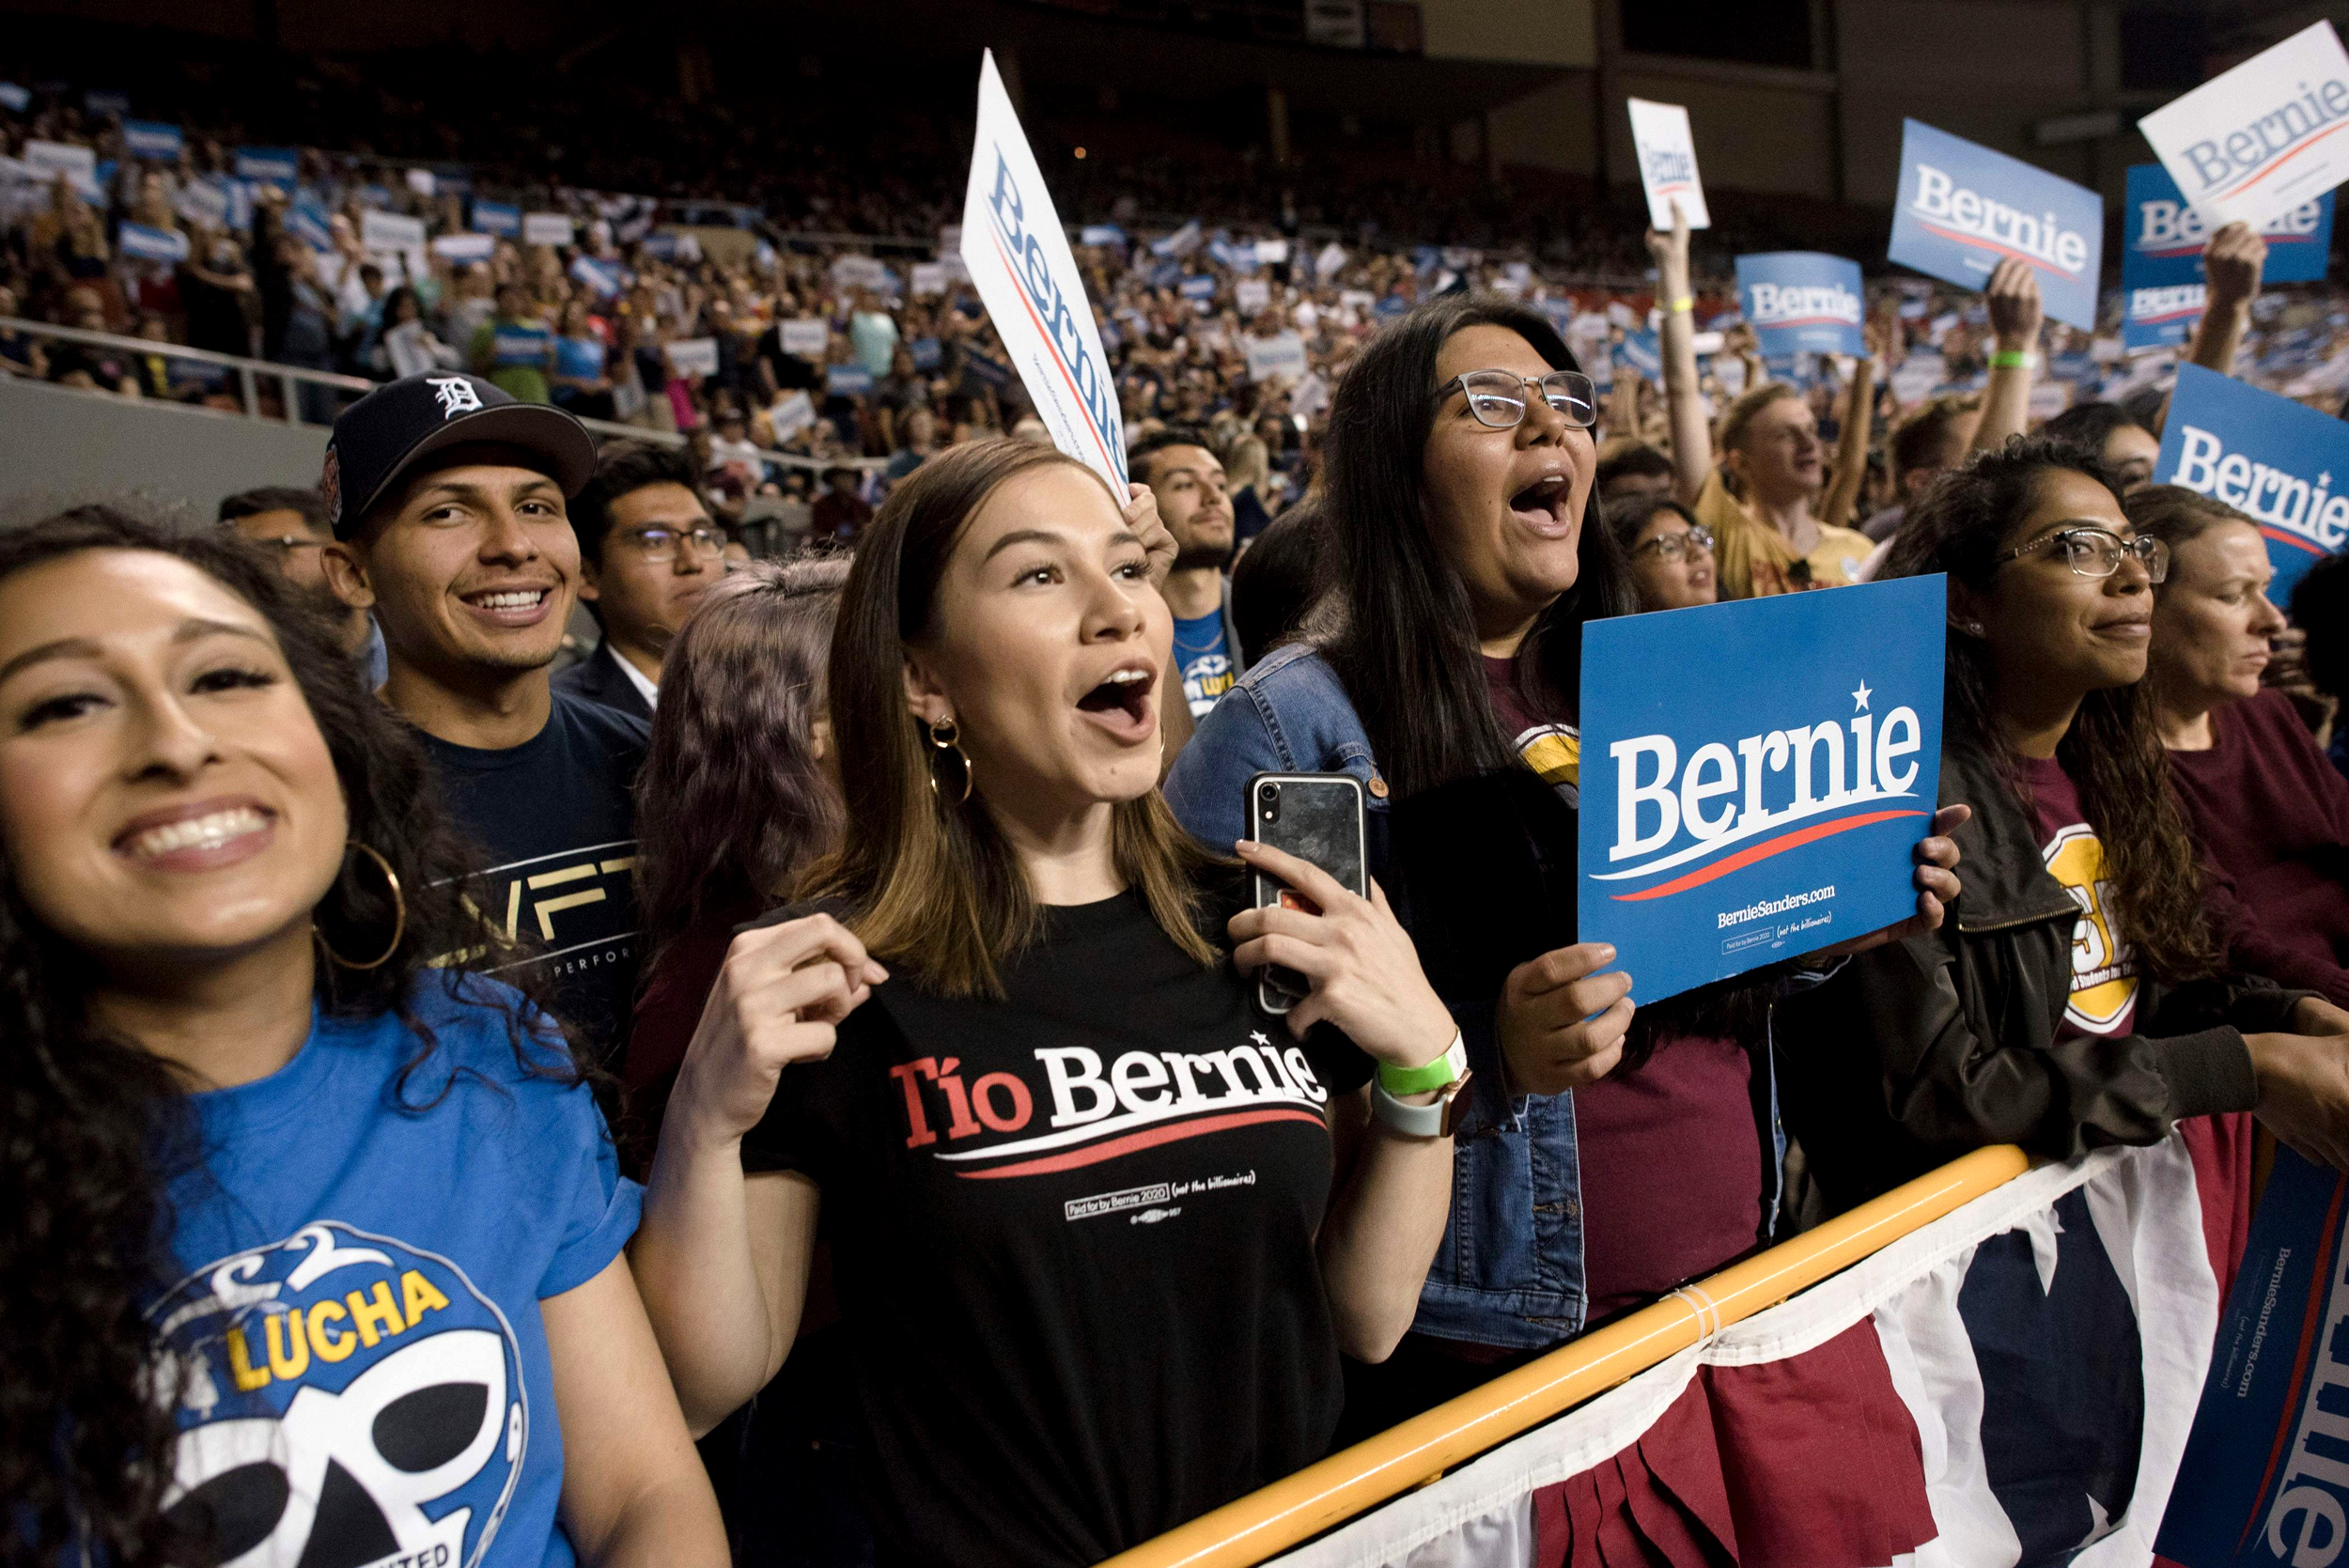 Read: Sanders proved 'you can engage, turn out Latinos', says top adviser